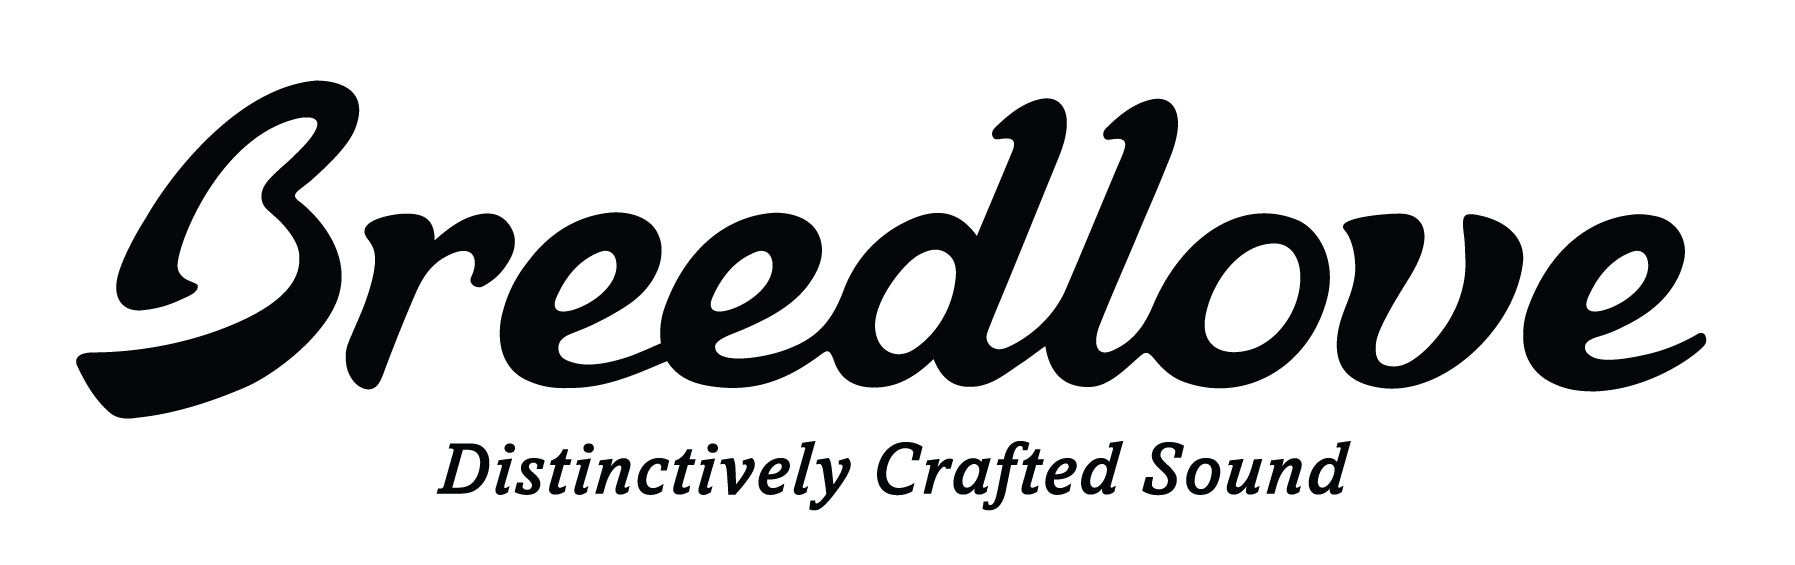 Breedlove_logo_with_tagline